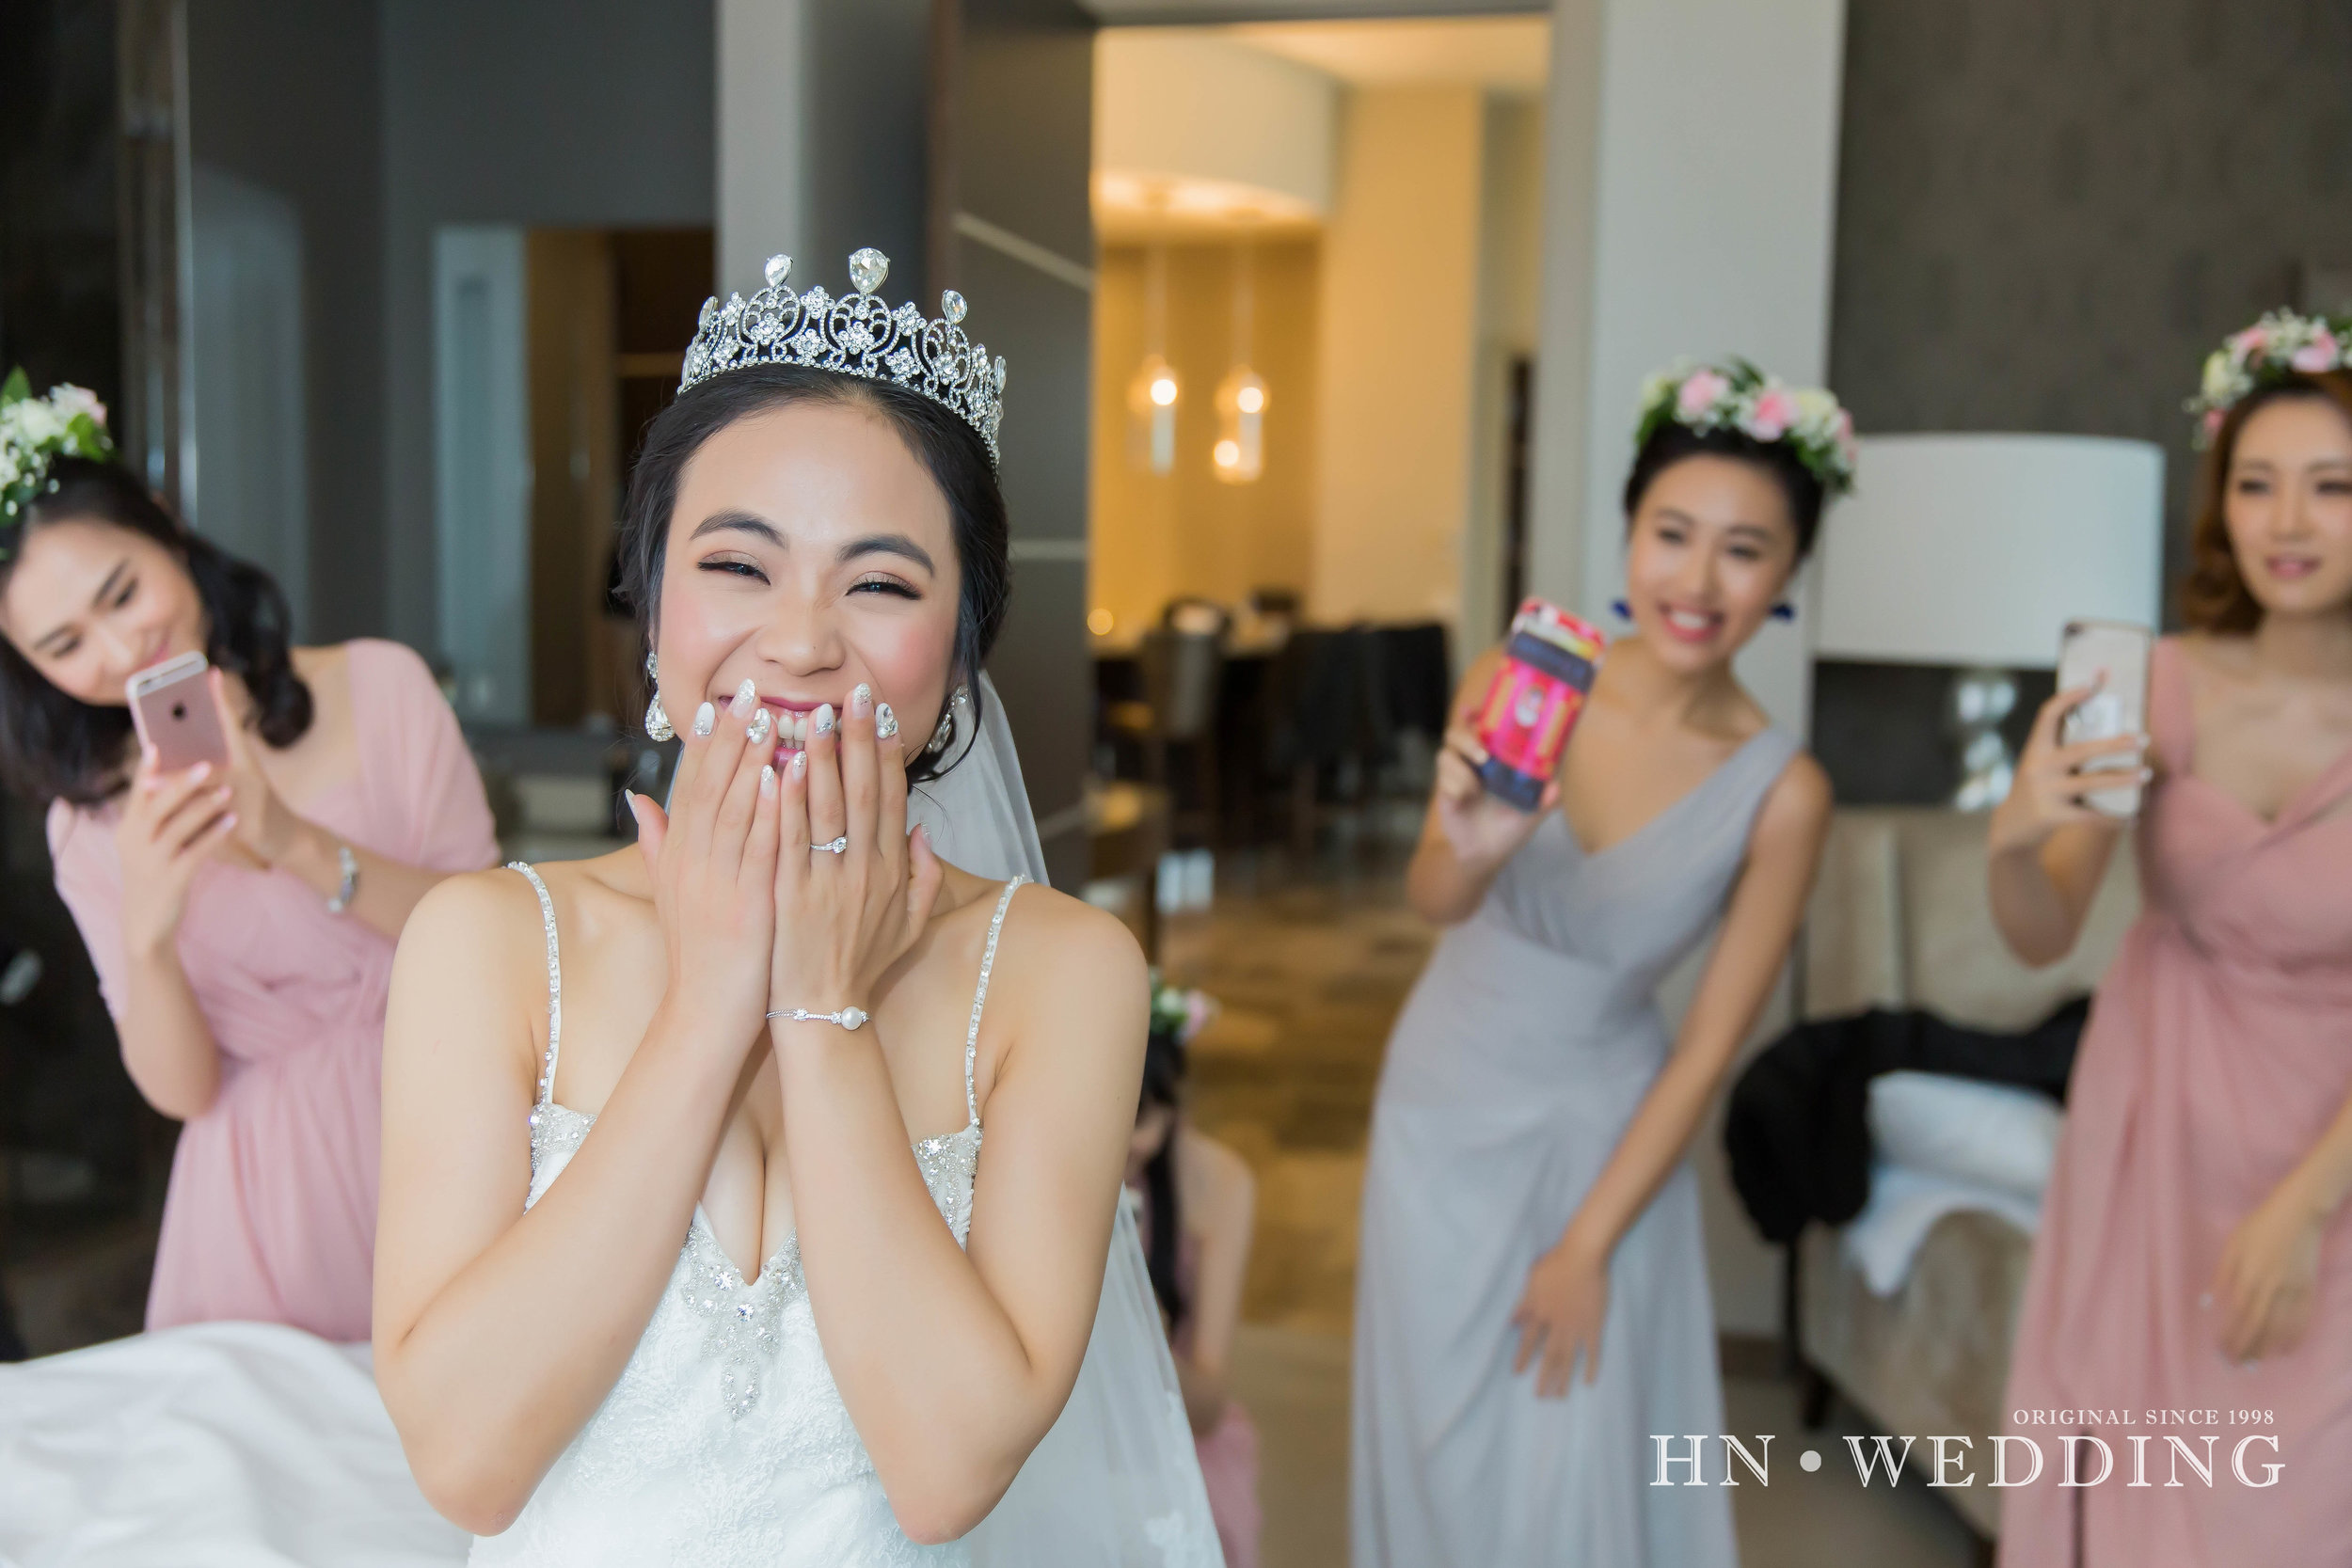 HNwedding-weddingday-20161029-5346.jpg